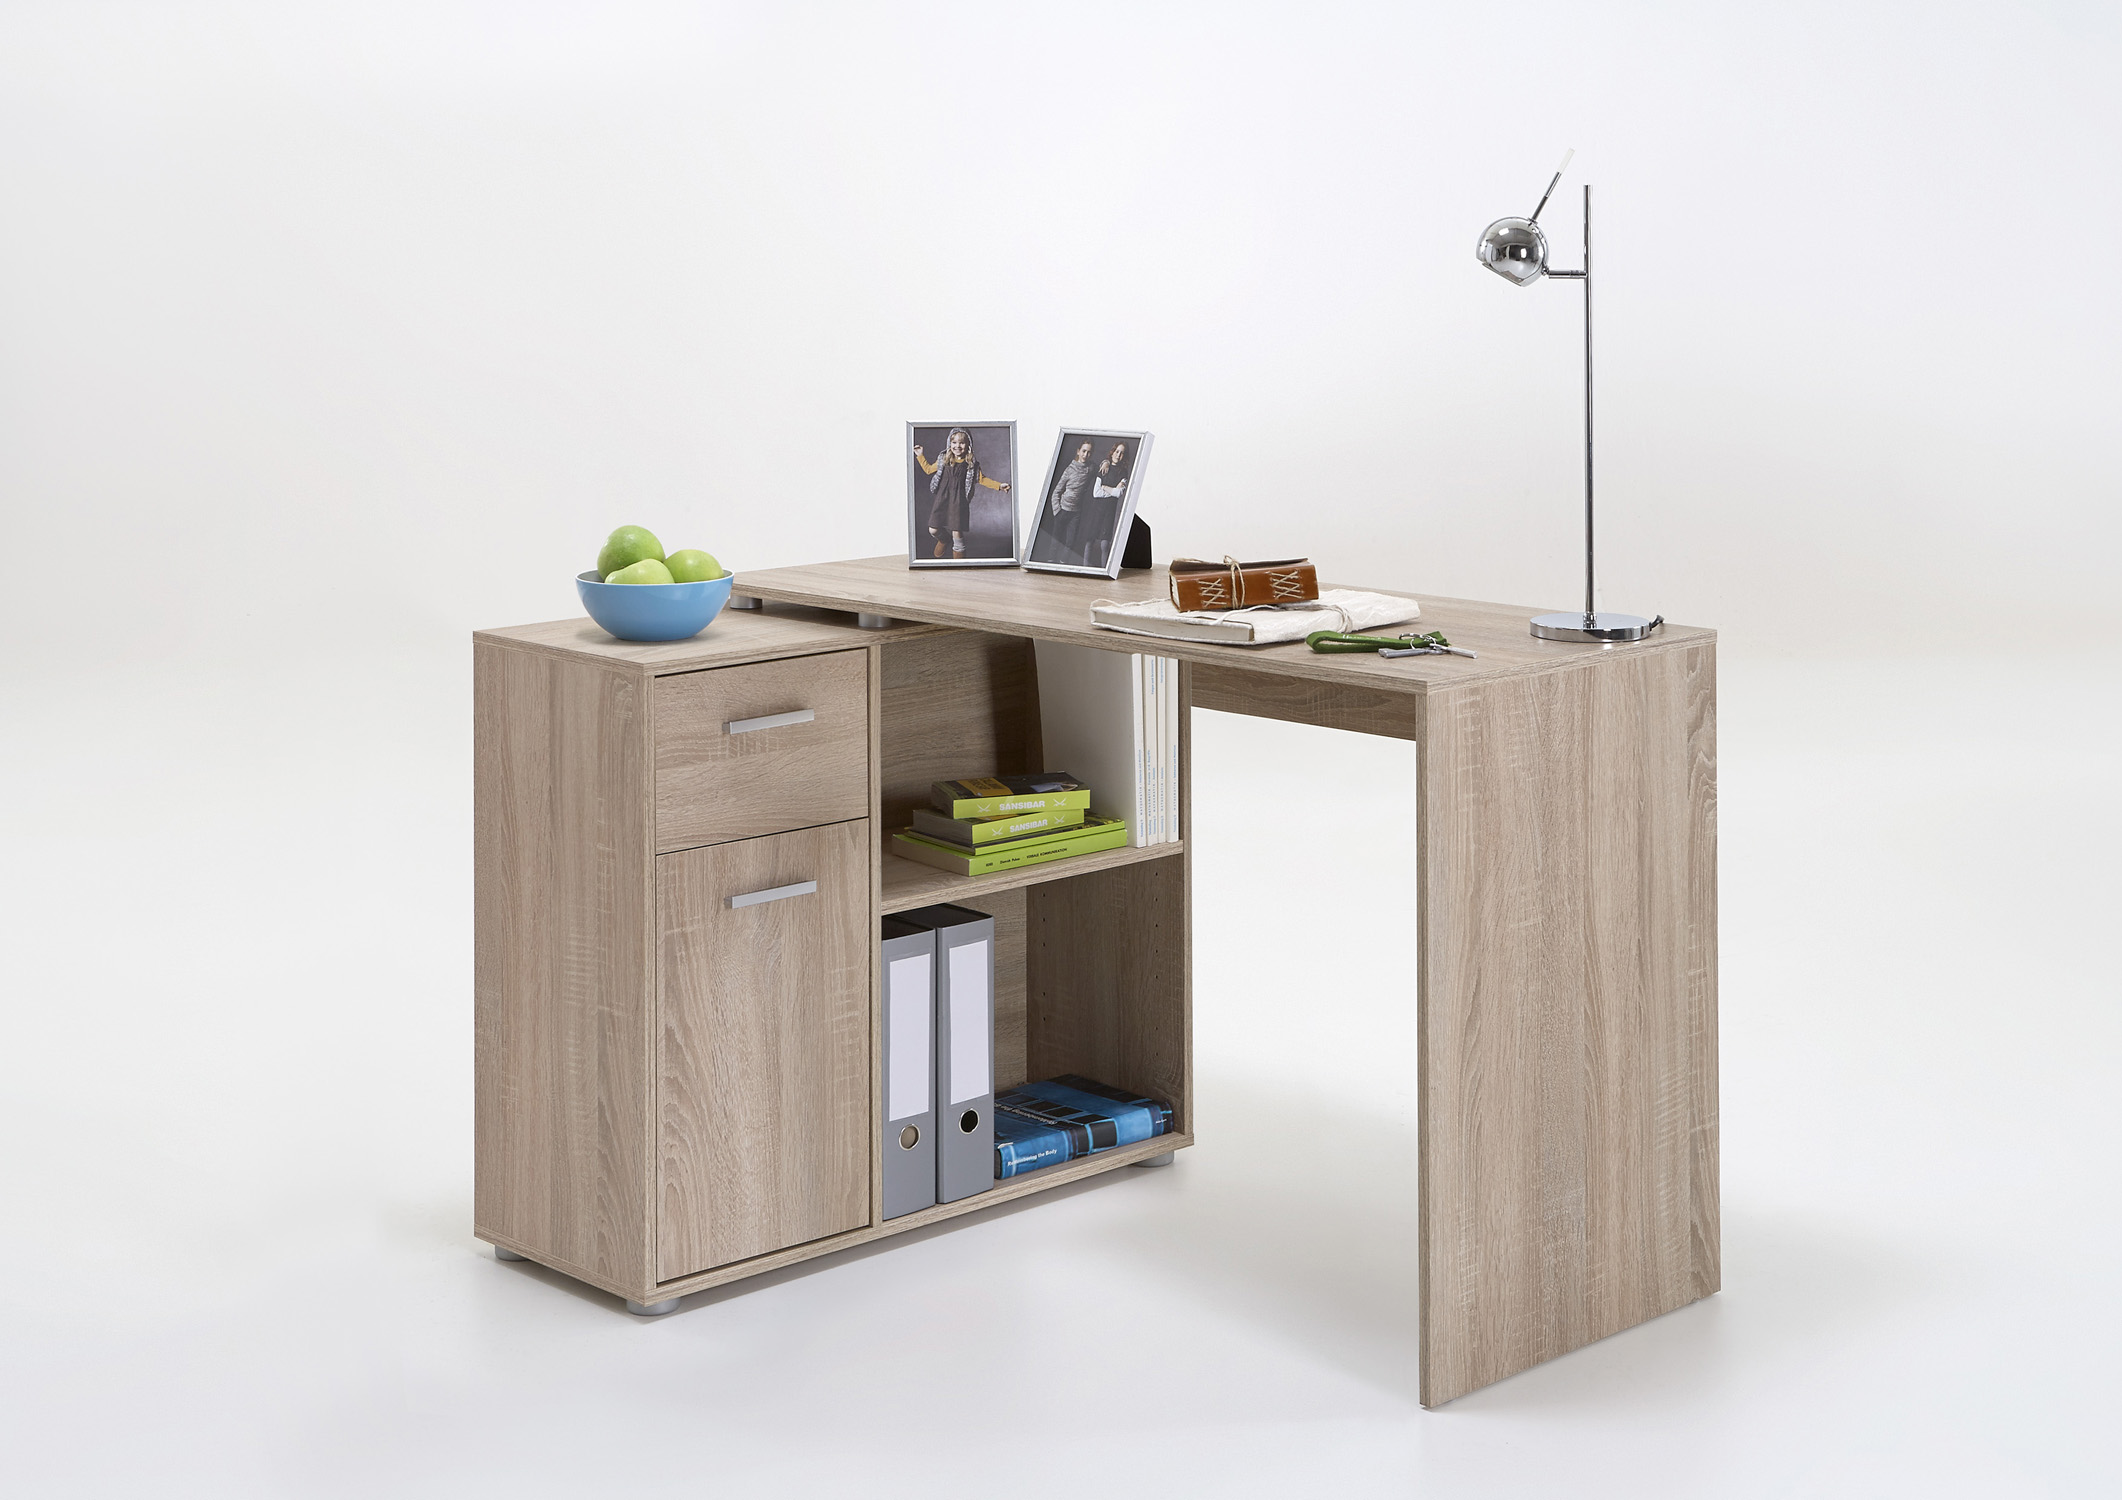 eckschreibtisch schreibtisch workstation winkelkombination aktenregal wei eiche ebay. Black Bedroom Furniture Sets. Home Design Ideas